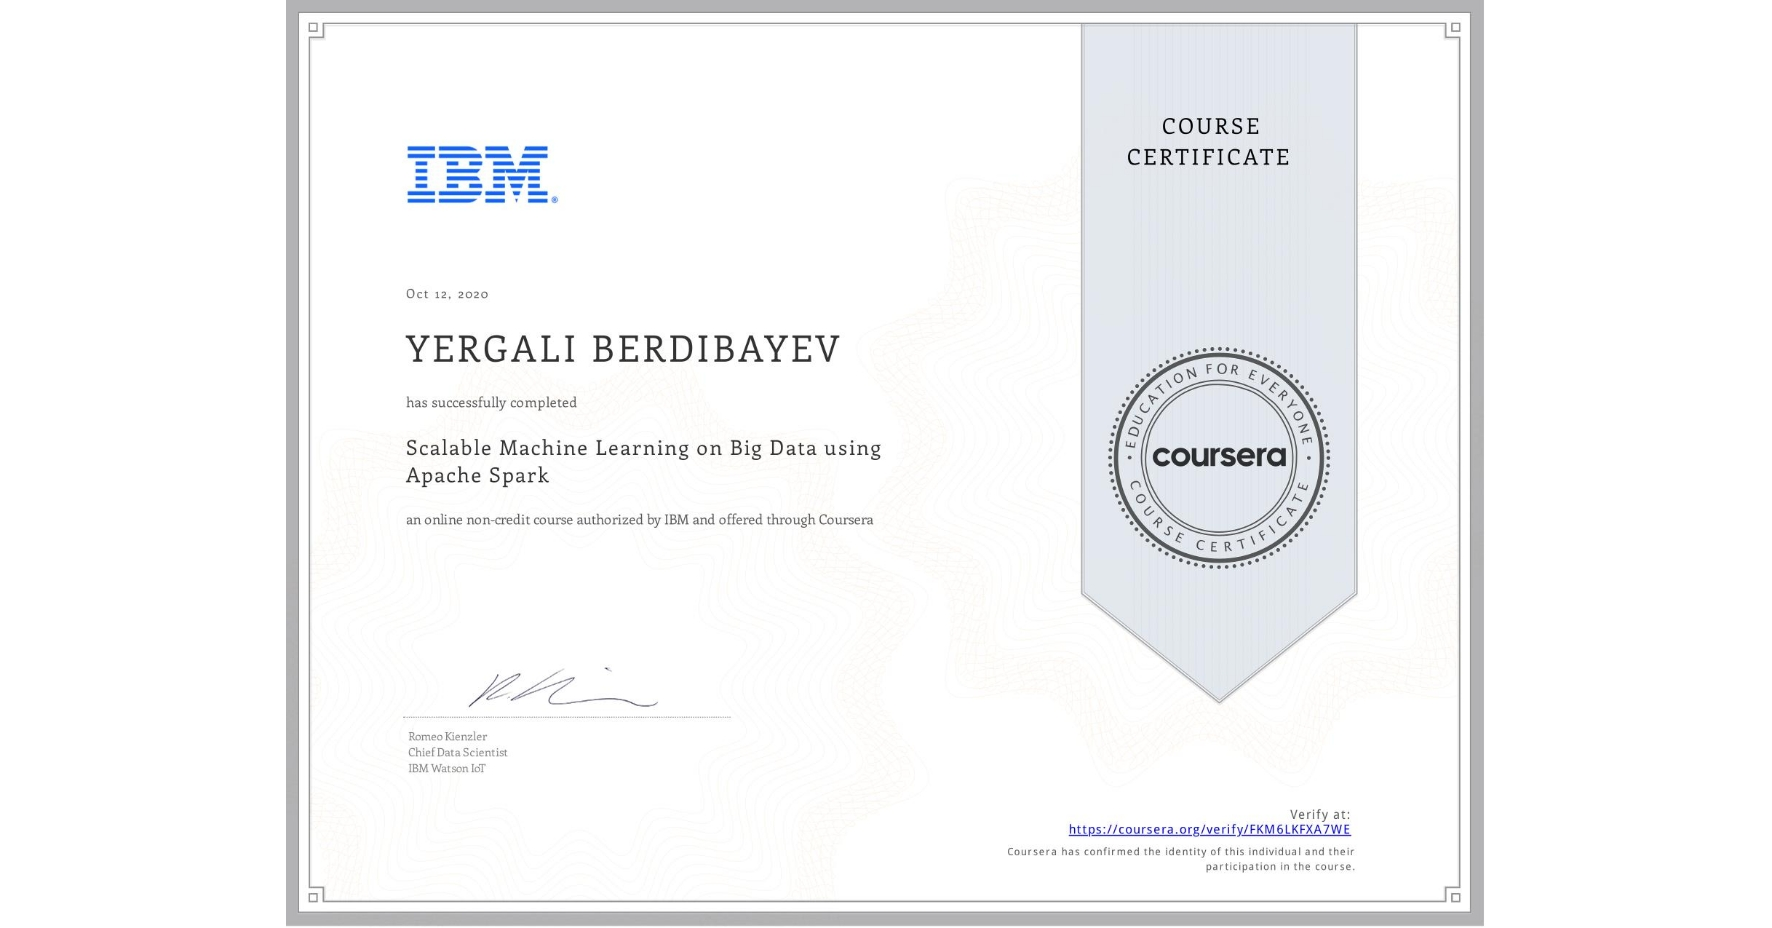 View certificate for Yergali Berdibayev, Scalable Machine Learning on Big Data using Apache Spark, an online non-credit course authorized by IBM and offered through Coursera